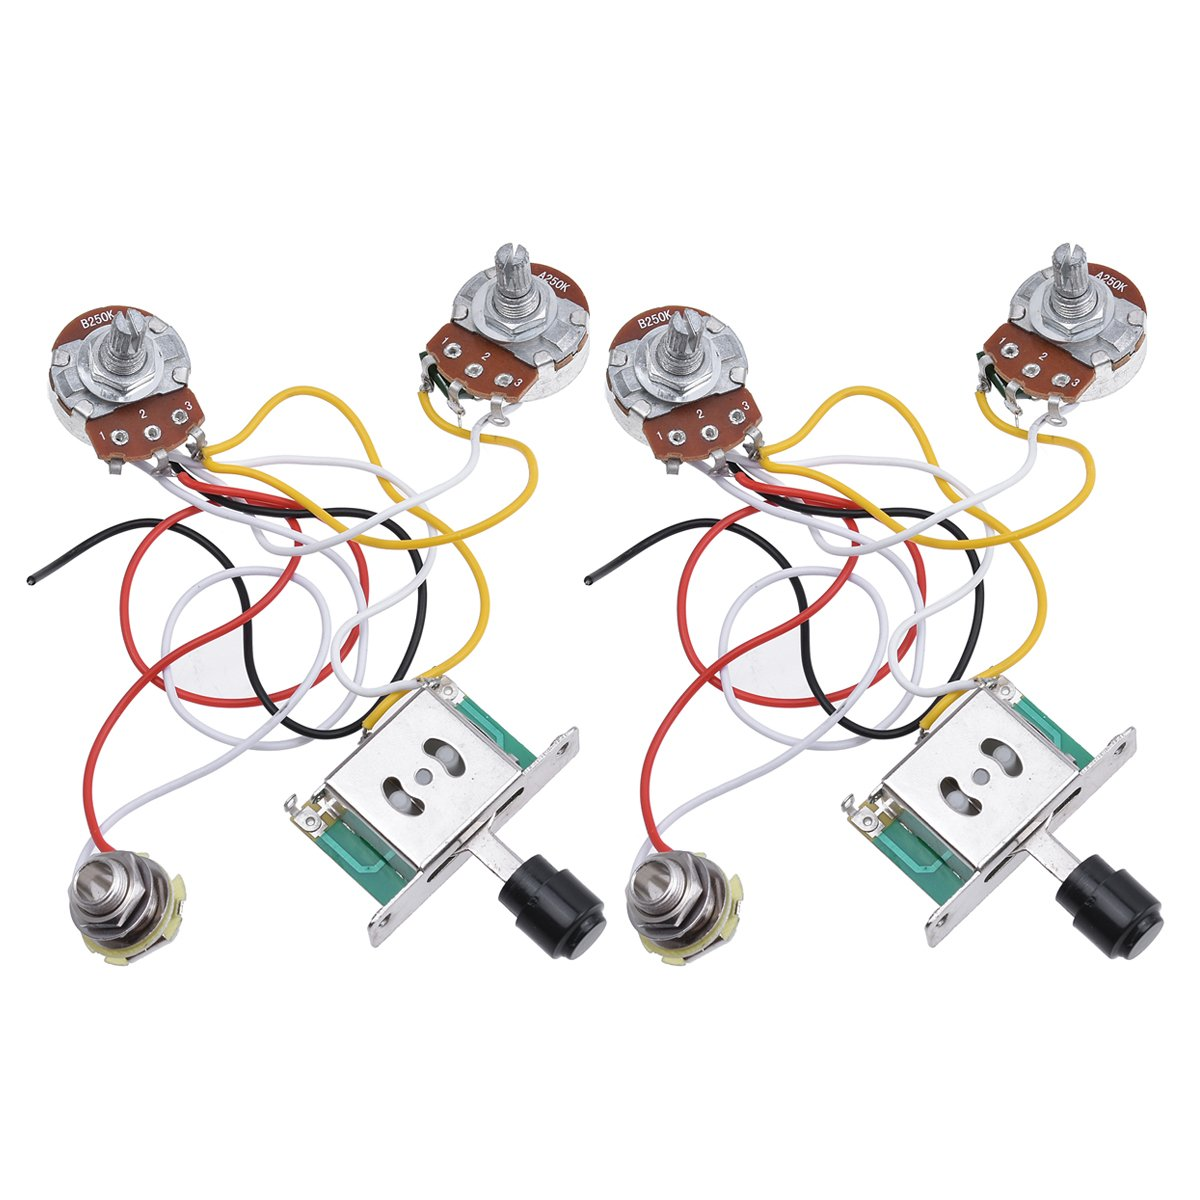 Kmise Prewired Wiring Harness Kit 3 Way Toggle Switch Tele 250k Pots Jack For Fender Telecaster Electric Guitar Parts 2 Set Musical Instruments